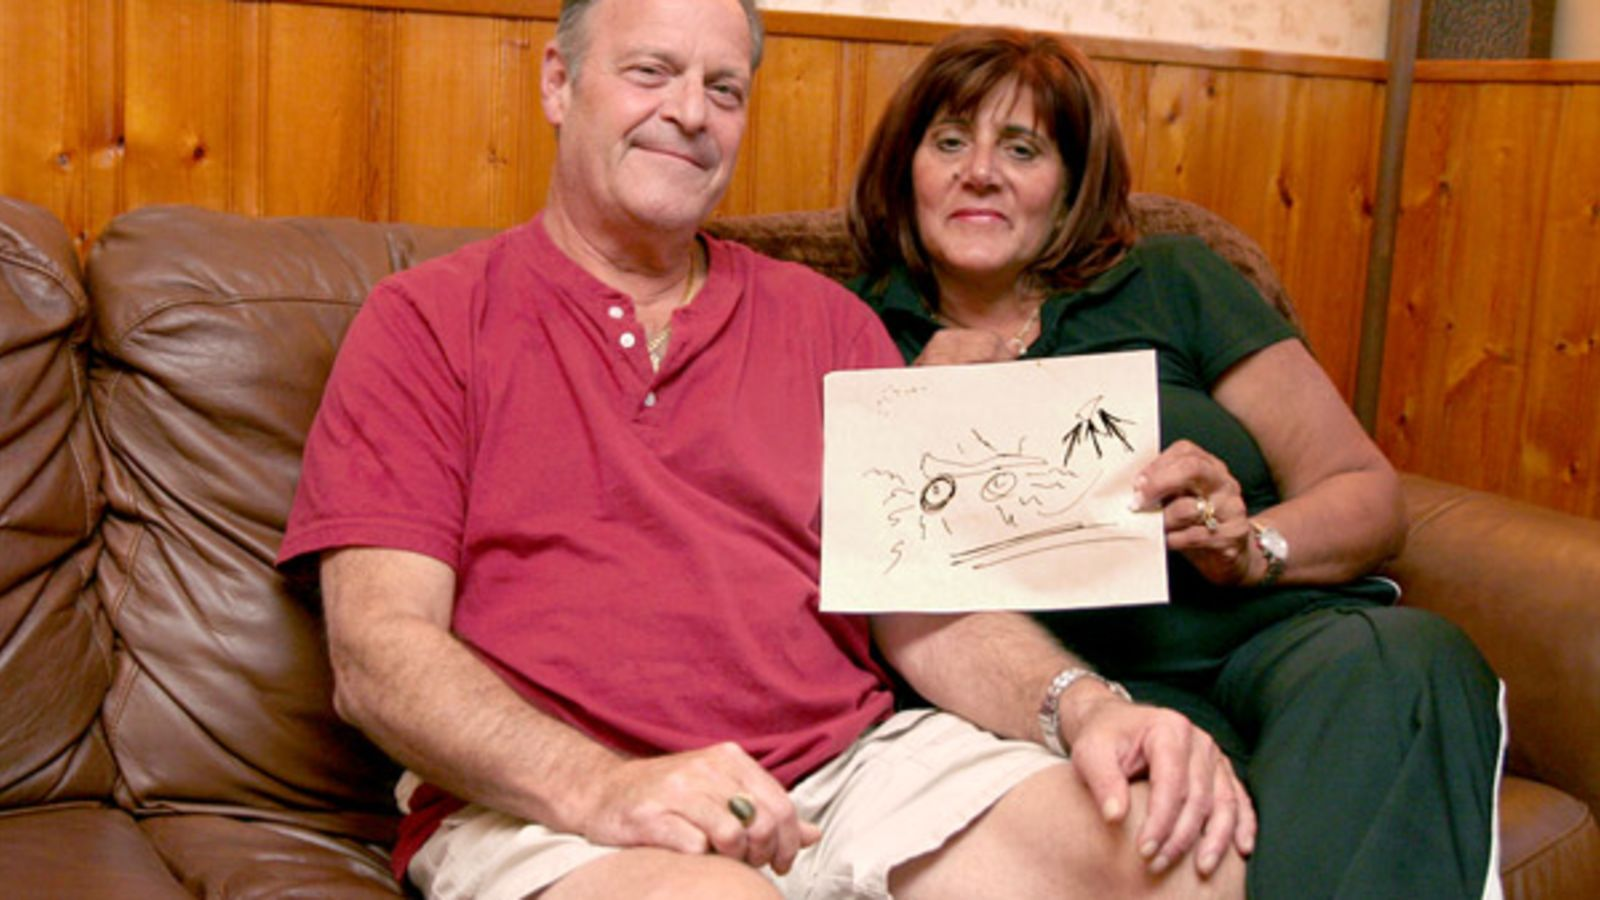 Outrageous Pictionary Drawing To Go Down In Area Family Lore https://t.co/BDBw84Rc9l https://t.co/7LKAtUURjZ